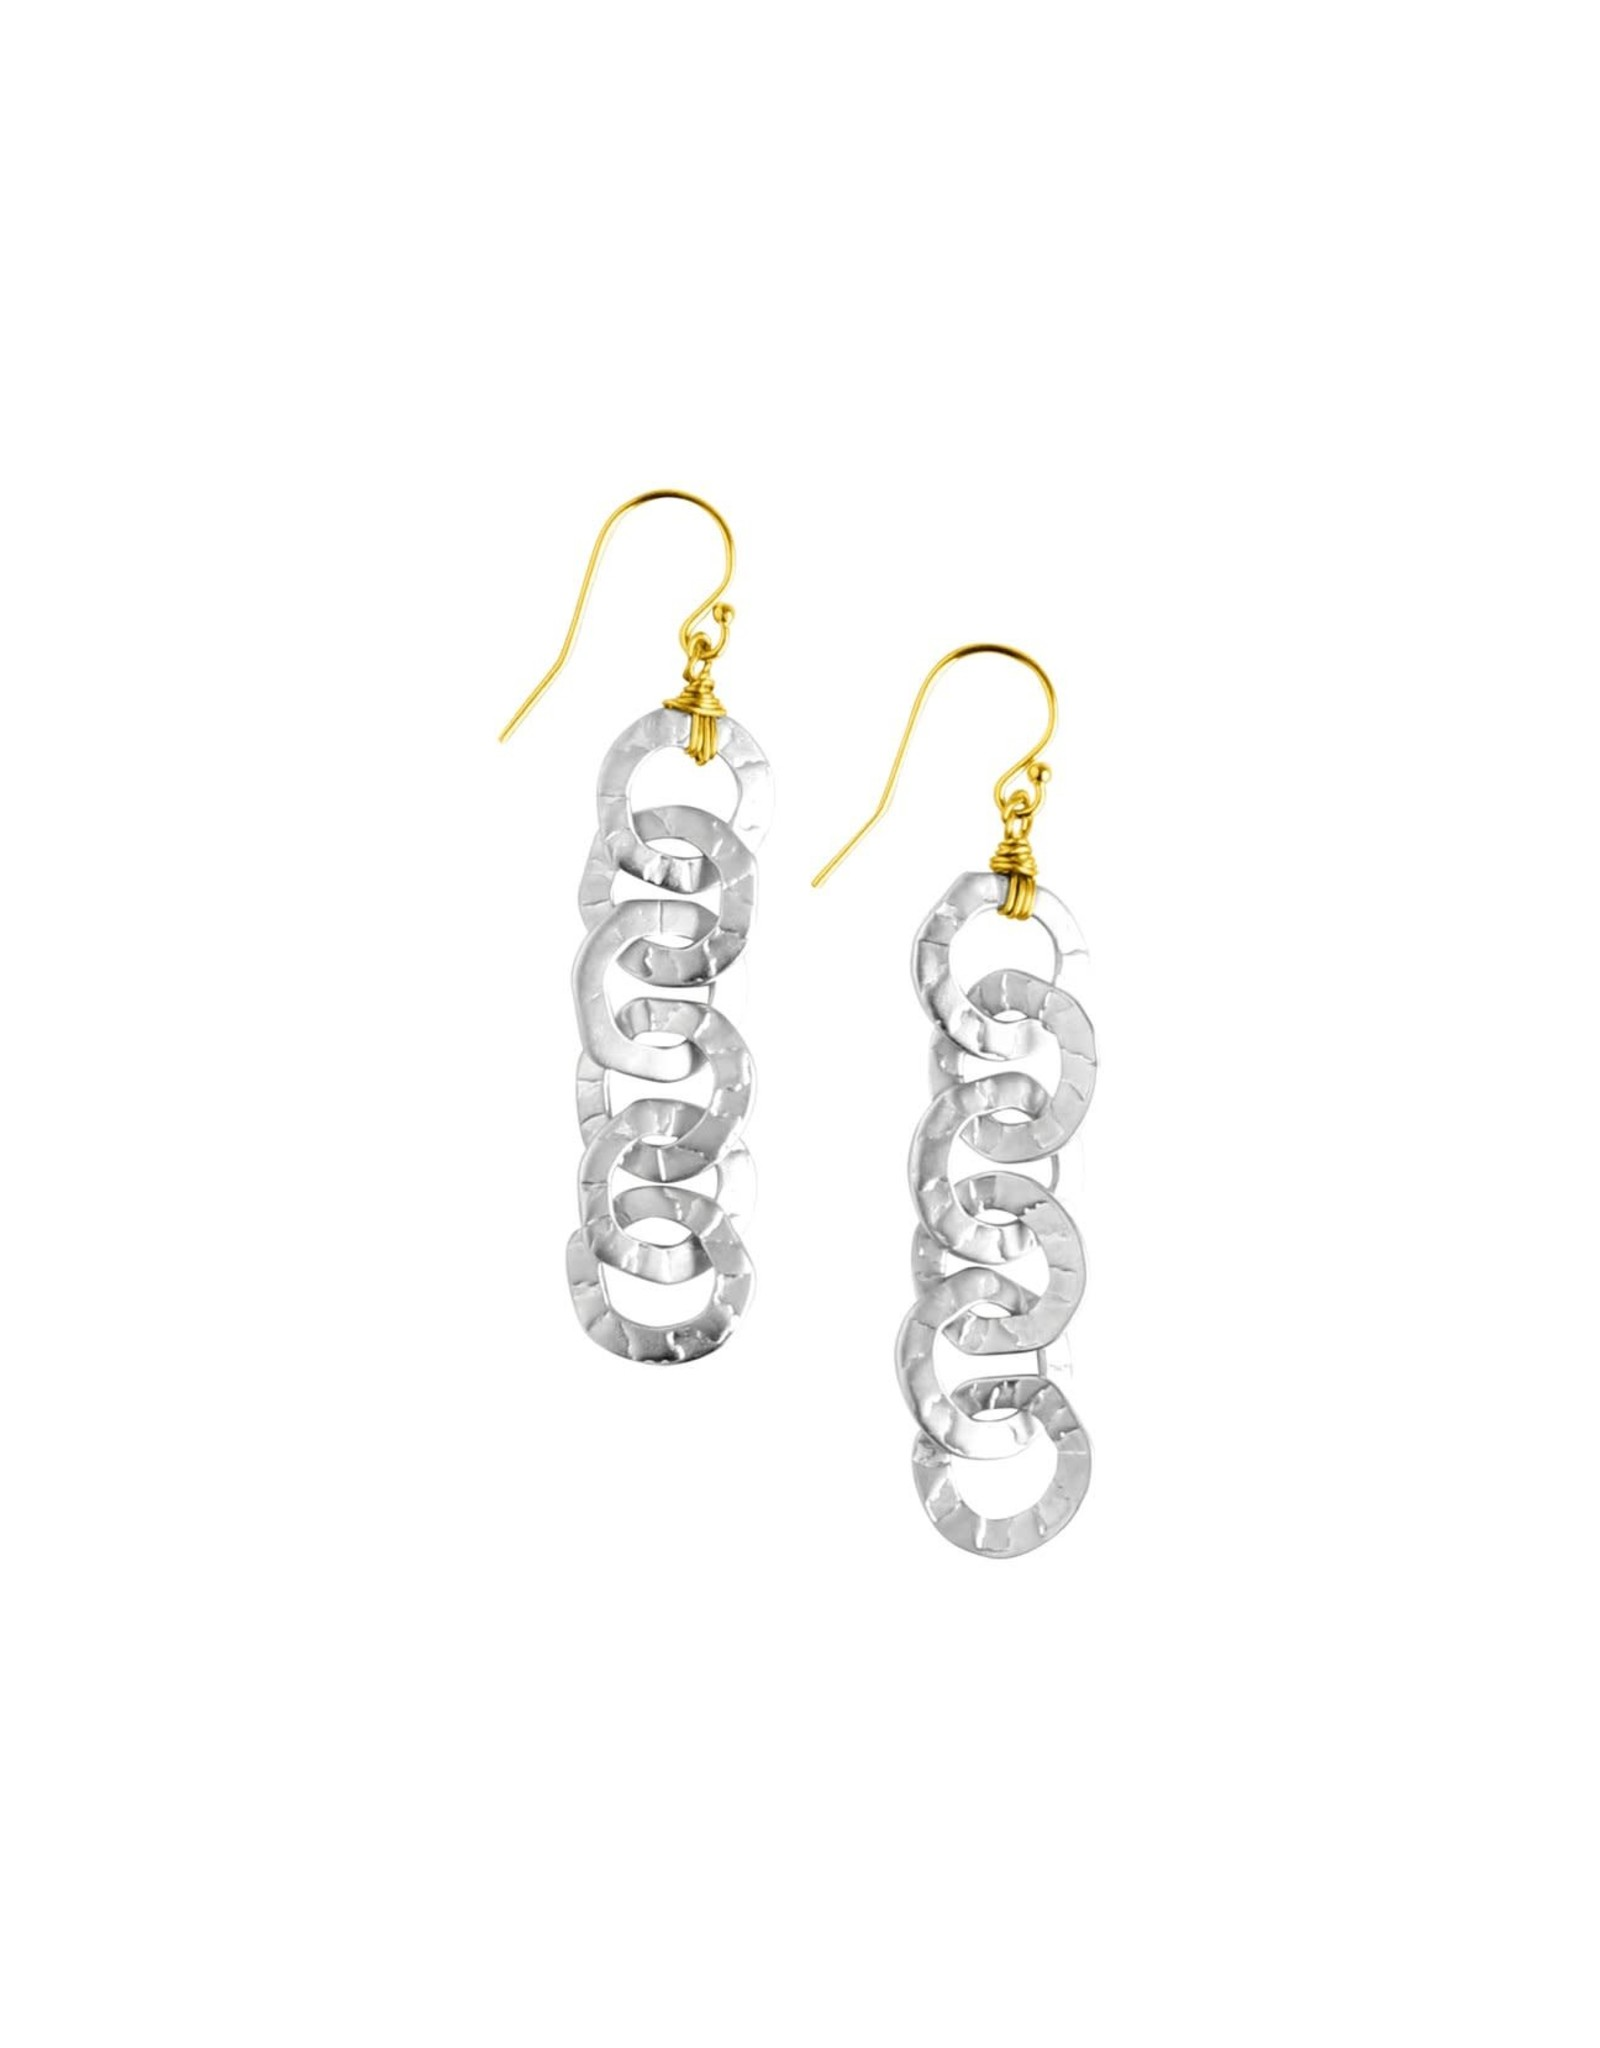 Catherine Page Jewelry Link Earrings